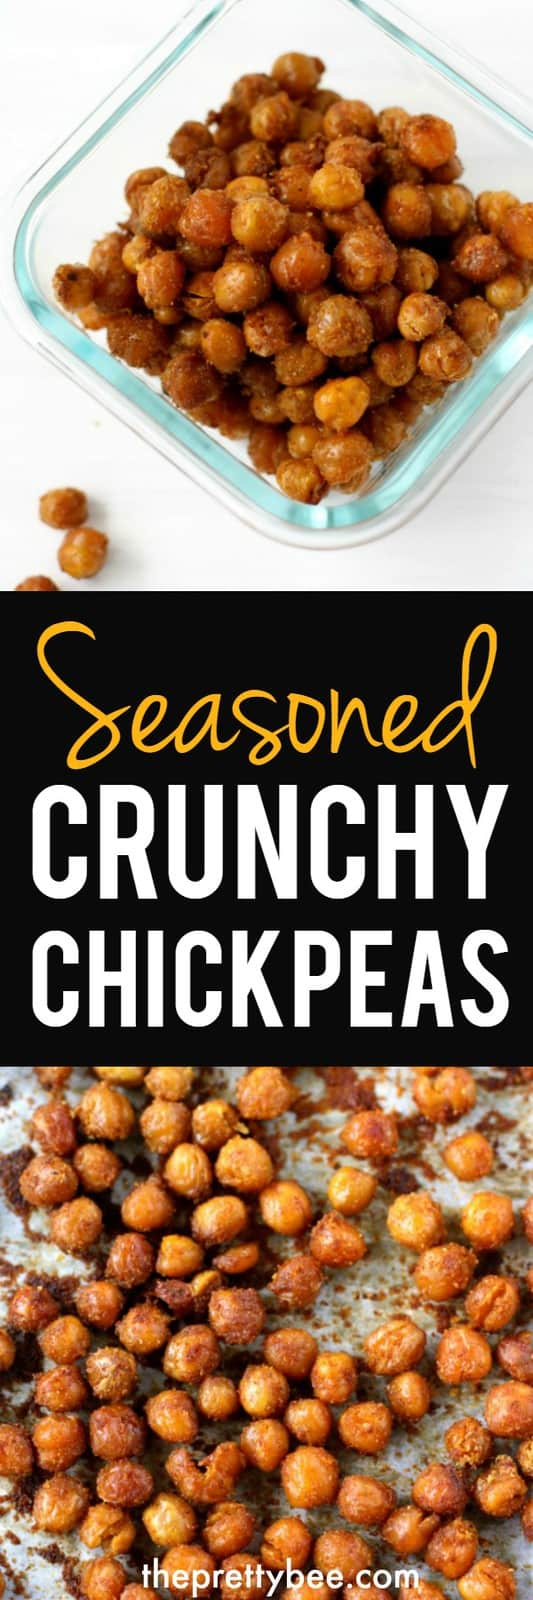 These seasoned crunchy chickpeas are a delicious an healthy snack that your family will love! #vegan #glutenfree #grain free #dairyfree #chickpeas